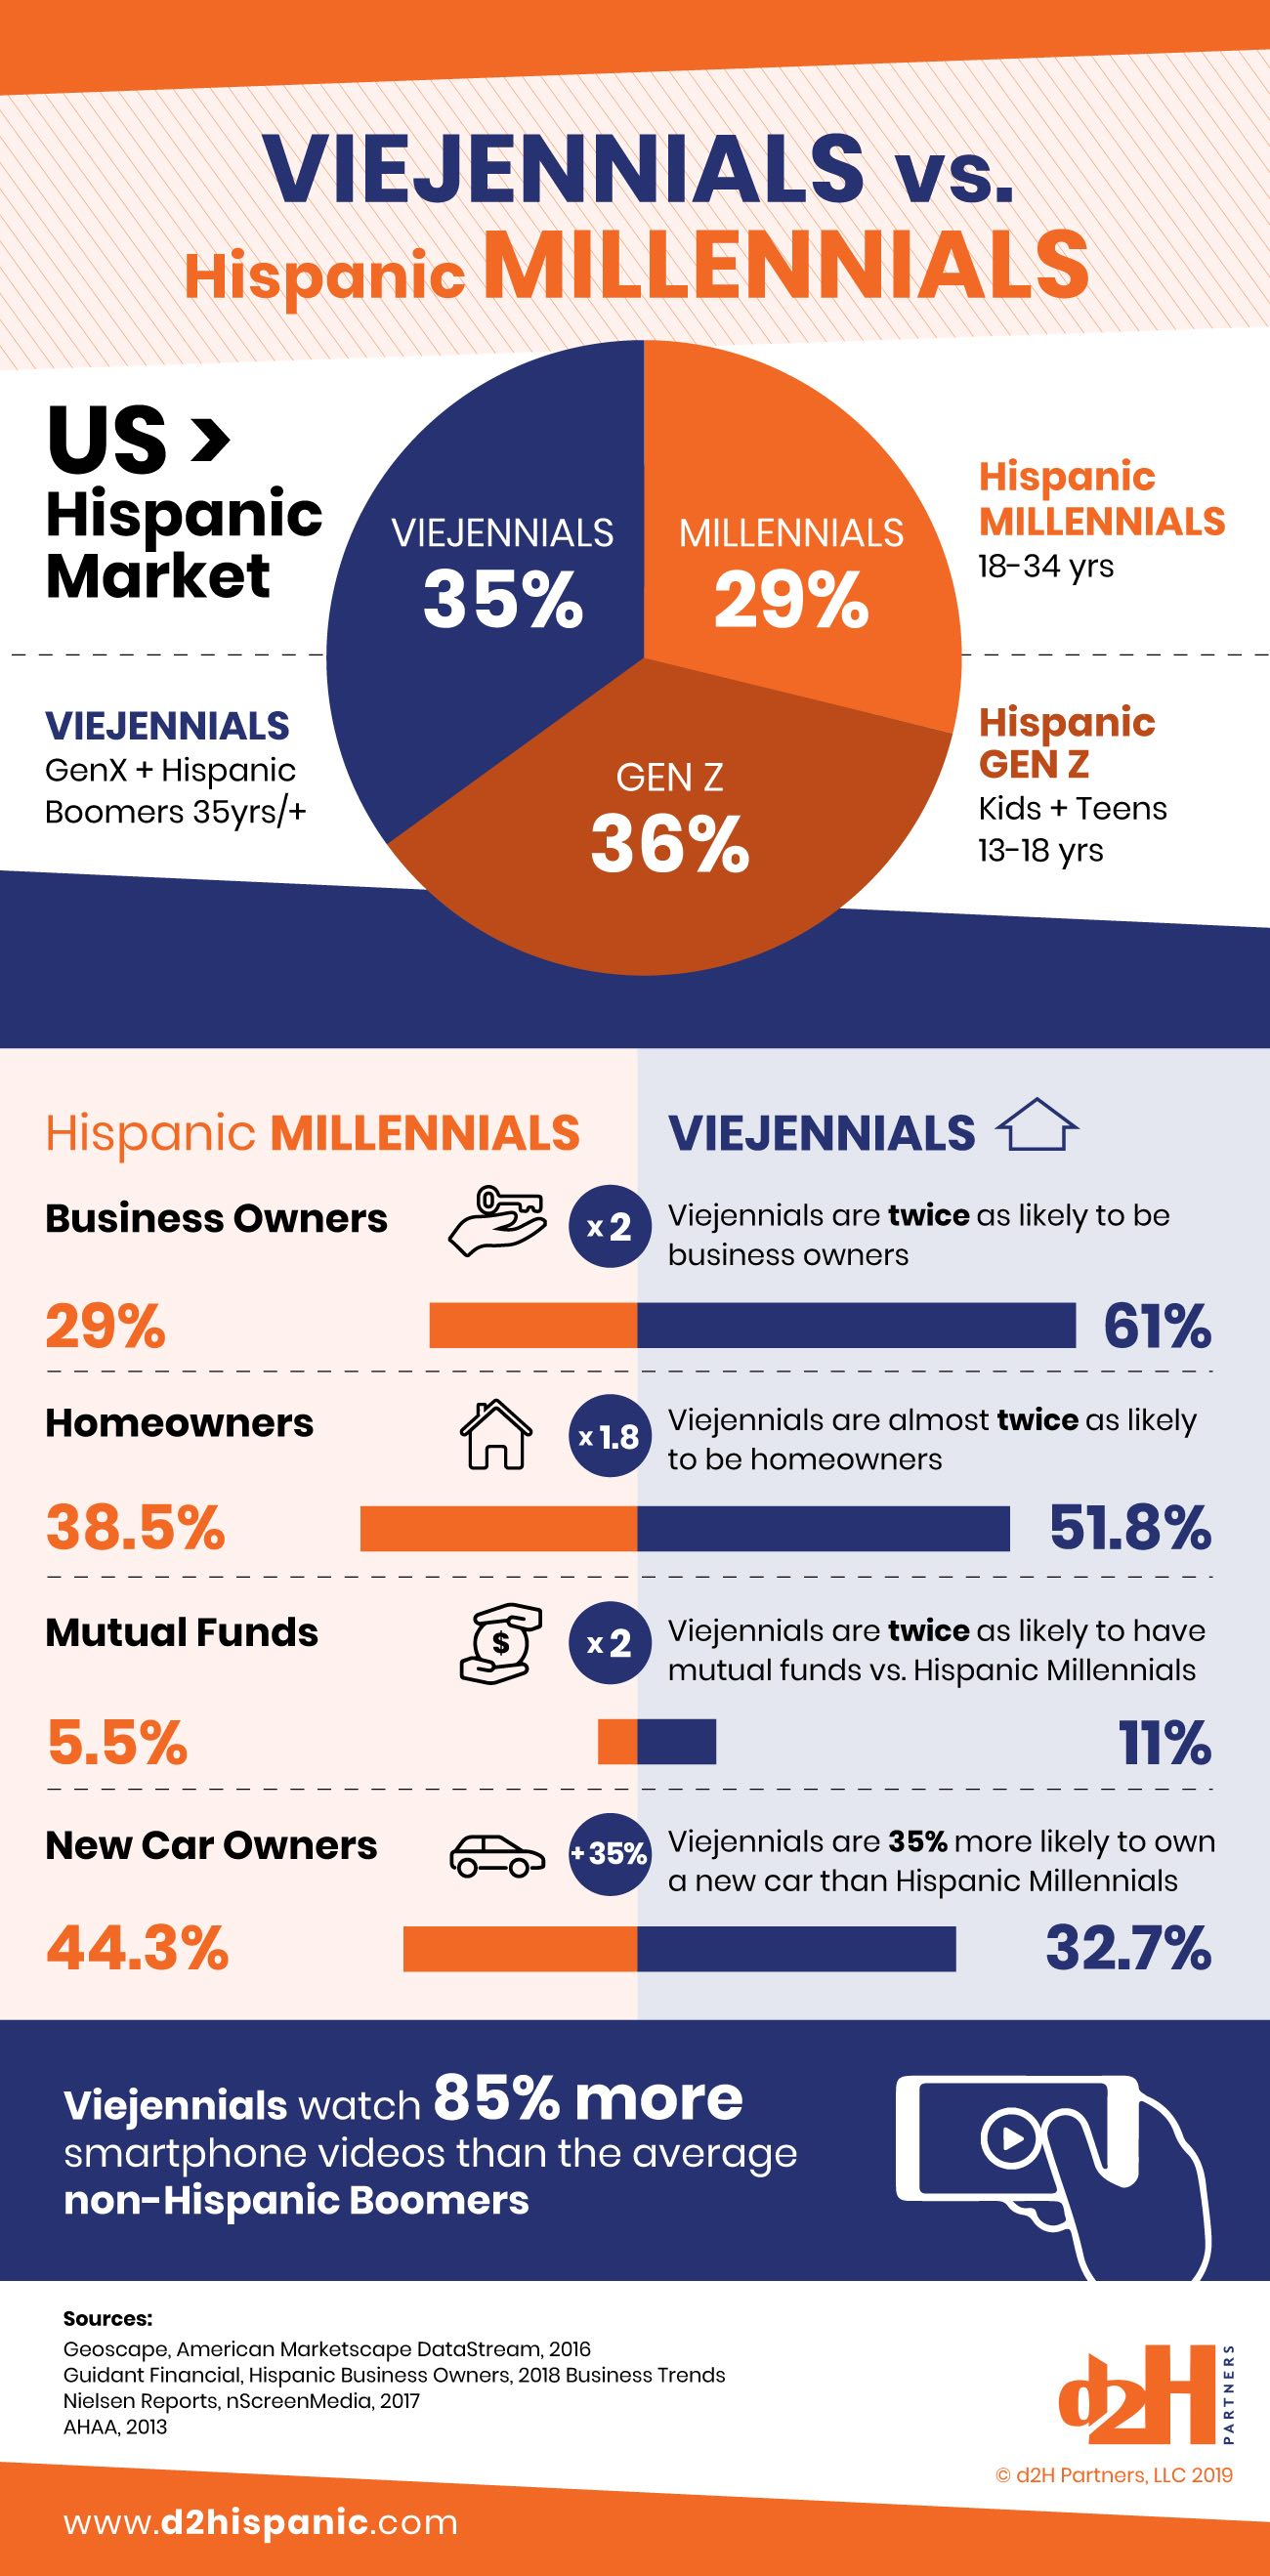 Viejennials vs. Hispanic Millennials in the USA Hispanic Market